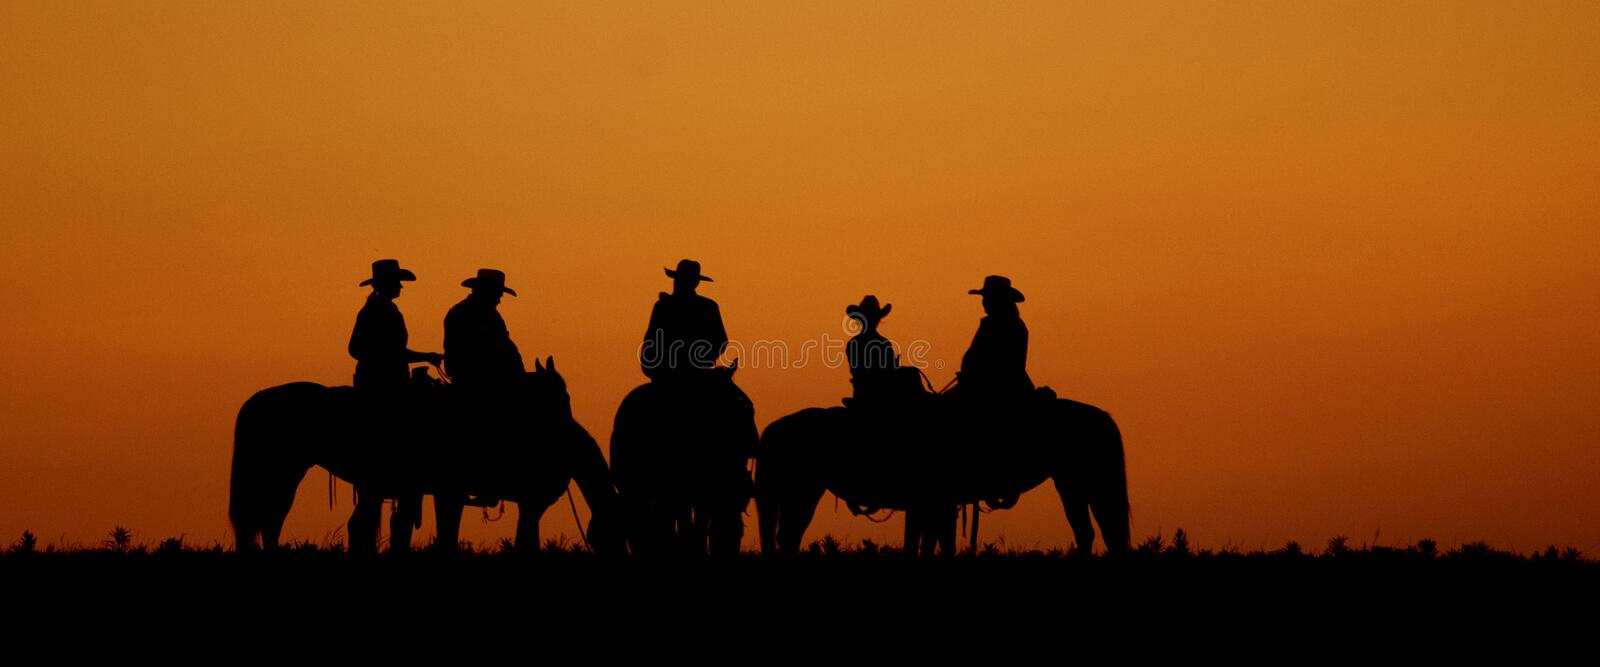 Silhouette de cowboy photos stock